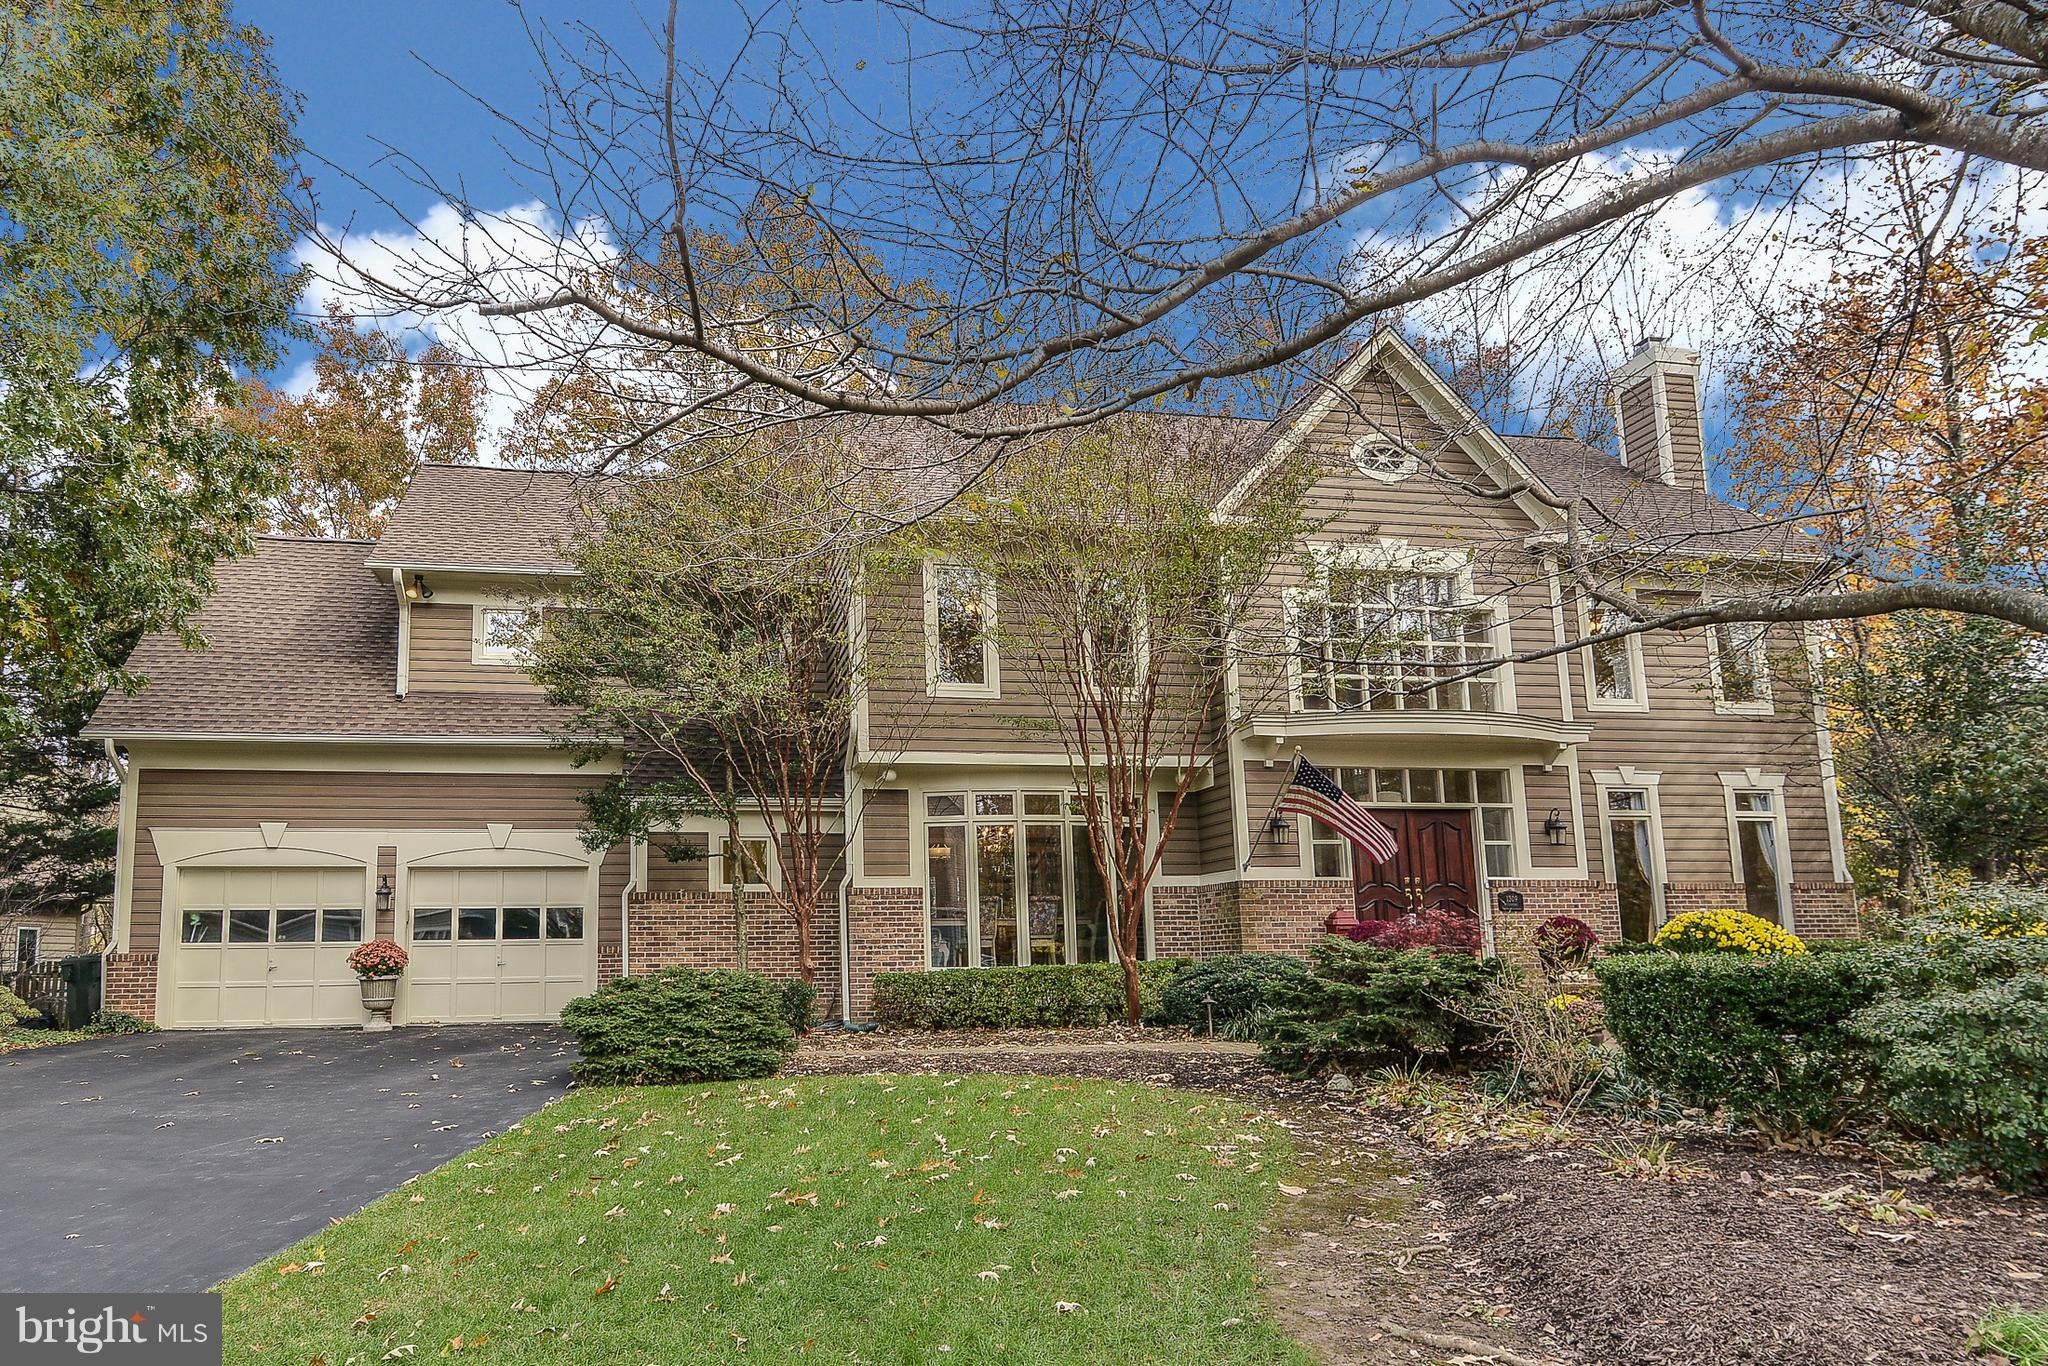 Open House CANCELLED 1/13/19!!Masterful design & modern luxury are uniquely embodied in this Gulick built home. Sited on a partially wooded 1/3 Acre lot, the Cambridge model features a brick & cedar siding front elevation. The slate walkway, with ambient lighting, leads to the double front door from the professionally manicured front lawn. The grand center staircase in two story foyer welcomes guests. Architectural archways border the formal living areas. Floor to ceiling windows with transoms, a wood burning fireplace, & crown molding grace the living room. Celebrate the holidays in the intimate dining room featuring a floor to ceiling bowed bay window & crown moldings. Beautiful hardwood floors & abundant natural light flow throughout the main level of the home. The recently-remodeled gourmet kitchen will inspire your inner chef with its Bosch stainless steel appliances, granite counters, glass mosaic backsplash & center island. The breakfast room flows into the magnificent family room boasting 20~+ ceilings, a dramatic gas fireplace with triangular mantel & second story overlook. French doors into the office & a powder room finish the main level. The gracious master suite, with cathedral ceilings & sitting room, are separated by a three-sided wood burning fireplace. Unwind in the new spa master bath. Highlights include heated travertine flooring, travertine & mosaic title, slipper shaped clawfoot tub, glass enclosed shower, double vanities with granite, & designer restoration hardware lighting & fixtures. Bedrooms 2 & 3 share a updated buddy bath featuring a double granite vanity & travertine title. Bedroom 4~s en-suite bath is completed with equally excellent finishes. The fully finished walkout basement has a recreation room with Wood fireplace, & a mini kitchen with granite, refrigerator, & wine cooler. The large bedroom & full bath make this level suitable for an in-law or au pair suite. A three-tiered wood deck, with outdoor stacked stone firepit, can be accessed from the breakfast or family room & overlooks the rear garden. Conveniently located to Reston Towne Center, Wiehle- Reston East Metro Station, Cameron Park with soccer/ baseball fields, basketball courts, Lake Fairfax with walking/ biking trails, athletic fields, skate park, waterpark & Hidden Creek Country Club.